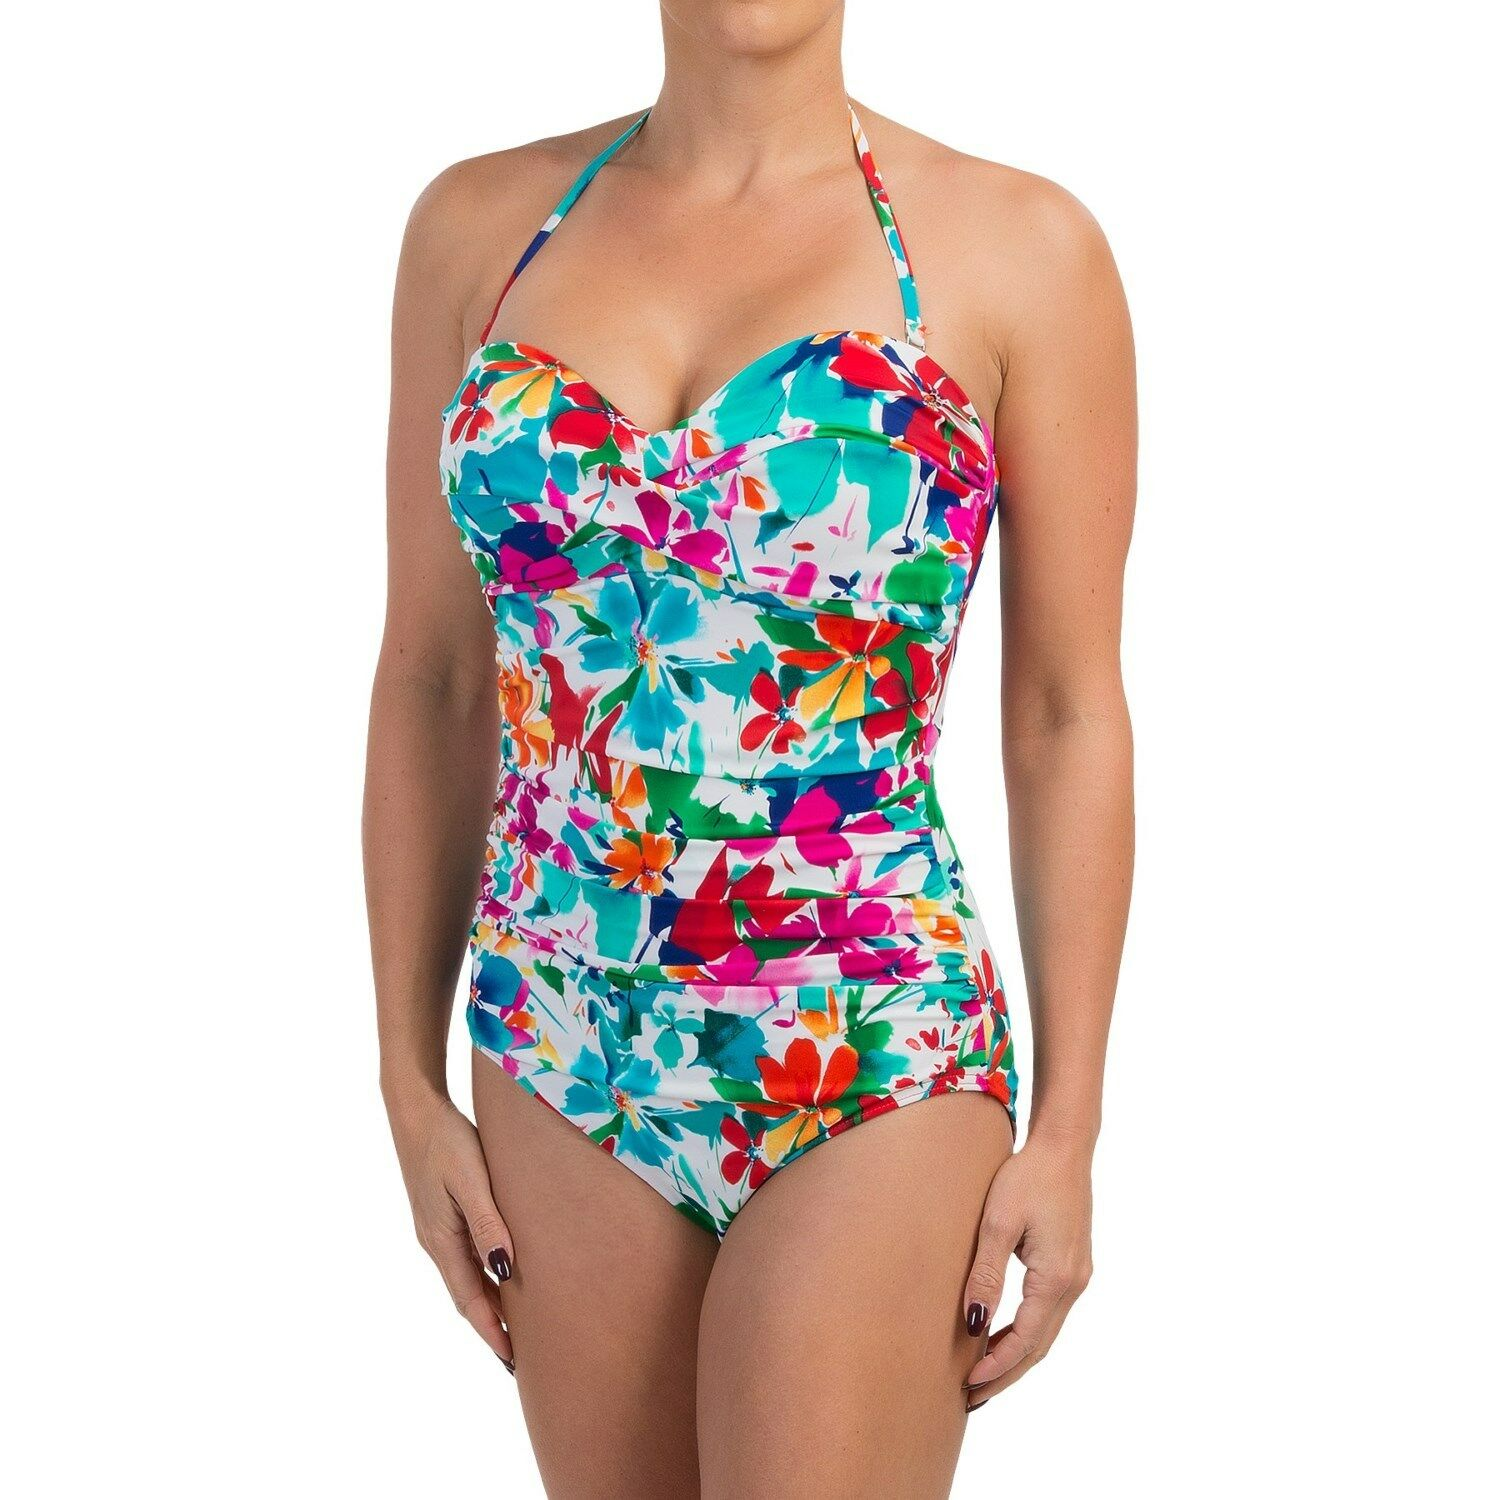 NWT MSRP  156 - MIRACLESUIT Barcelona Floral One-Piece, Brights,  Size 18